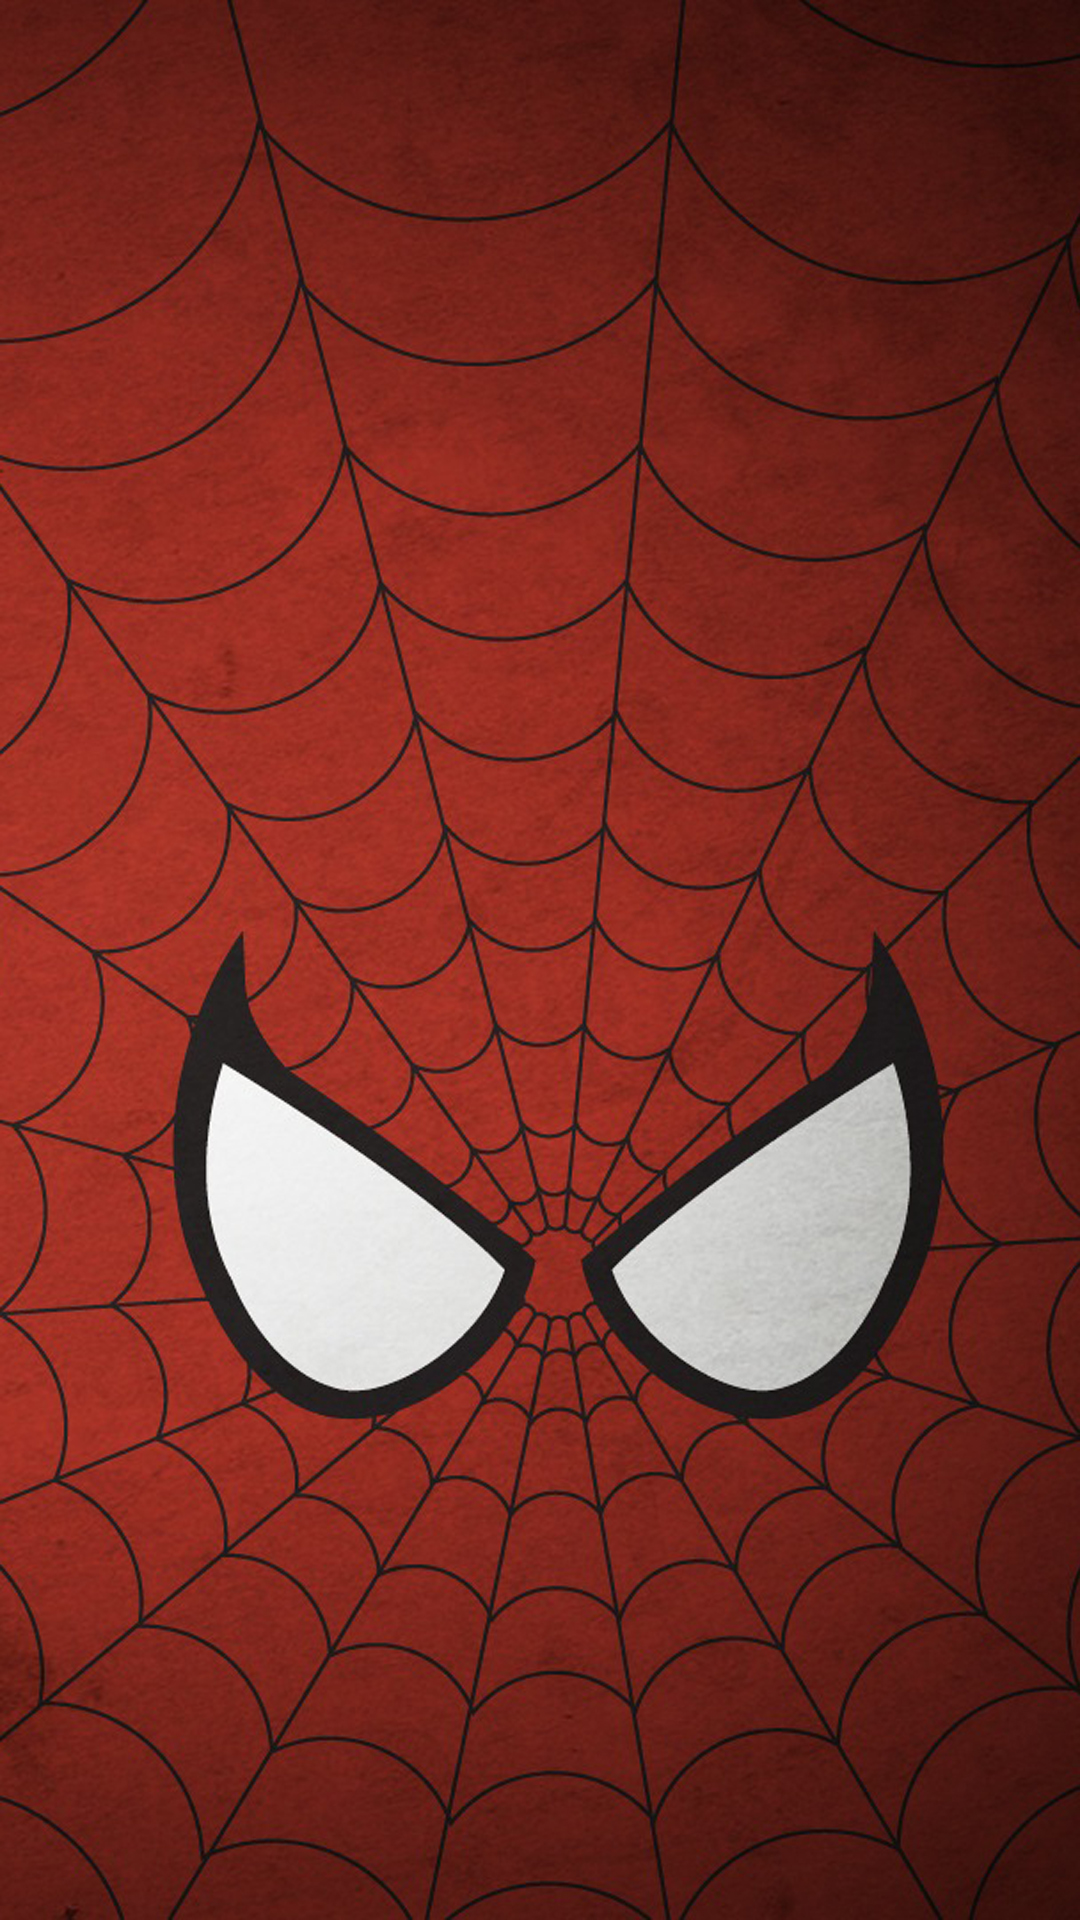 Tagged Spider Man Trap Wallpaper